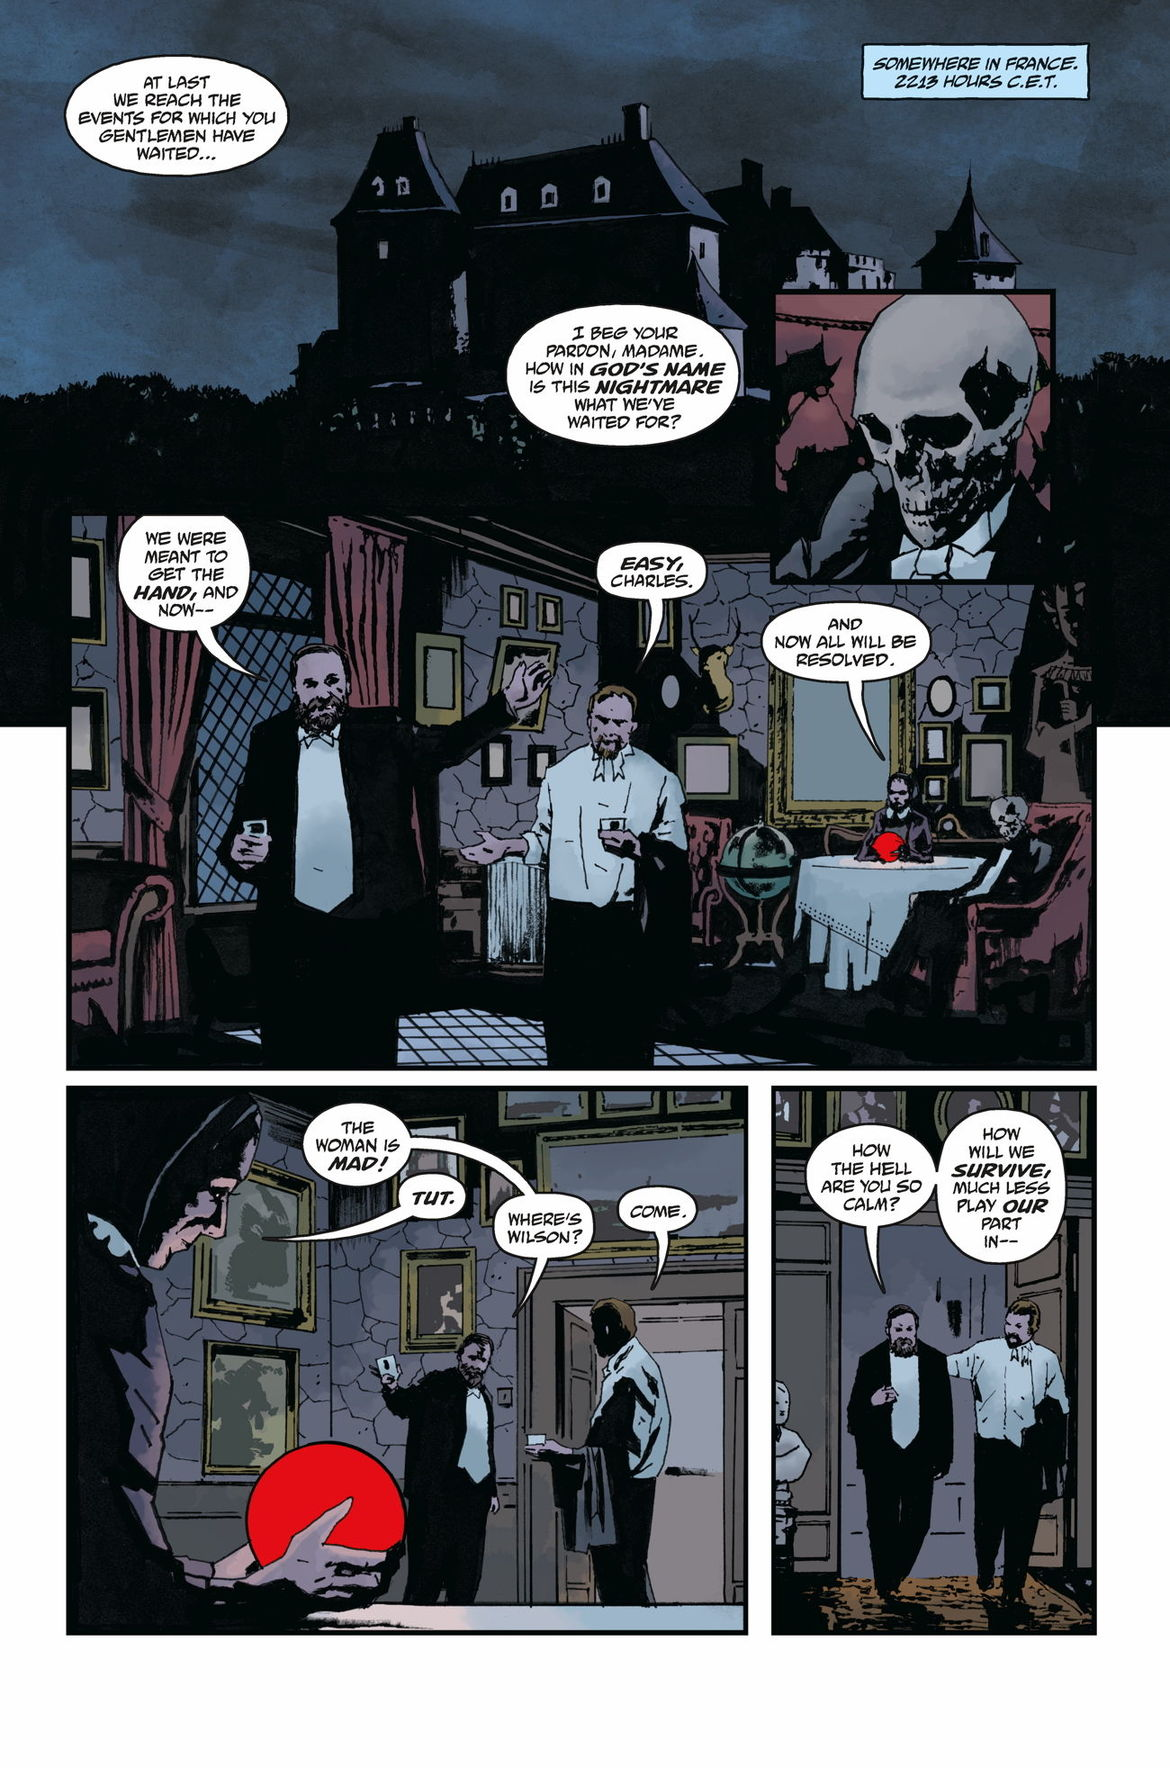 2d845ec256aca B.R.P.D.: The Devil You Know #14: exclusive first look